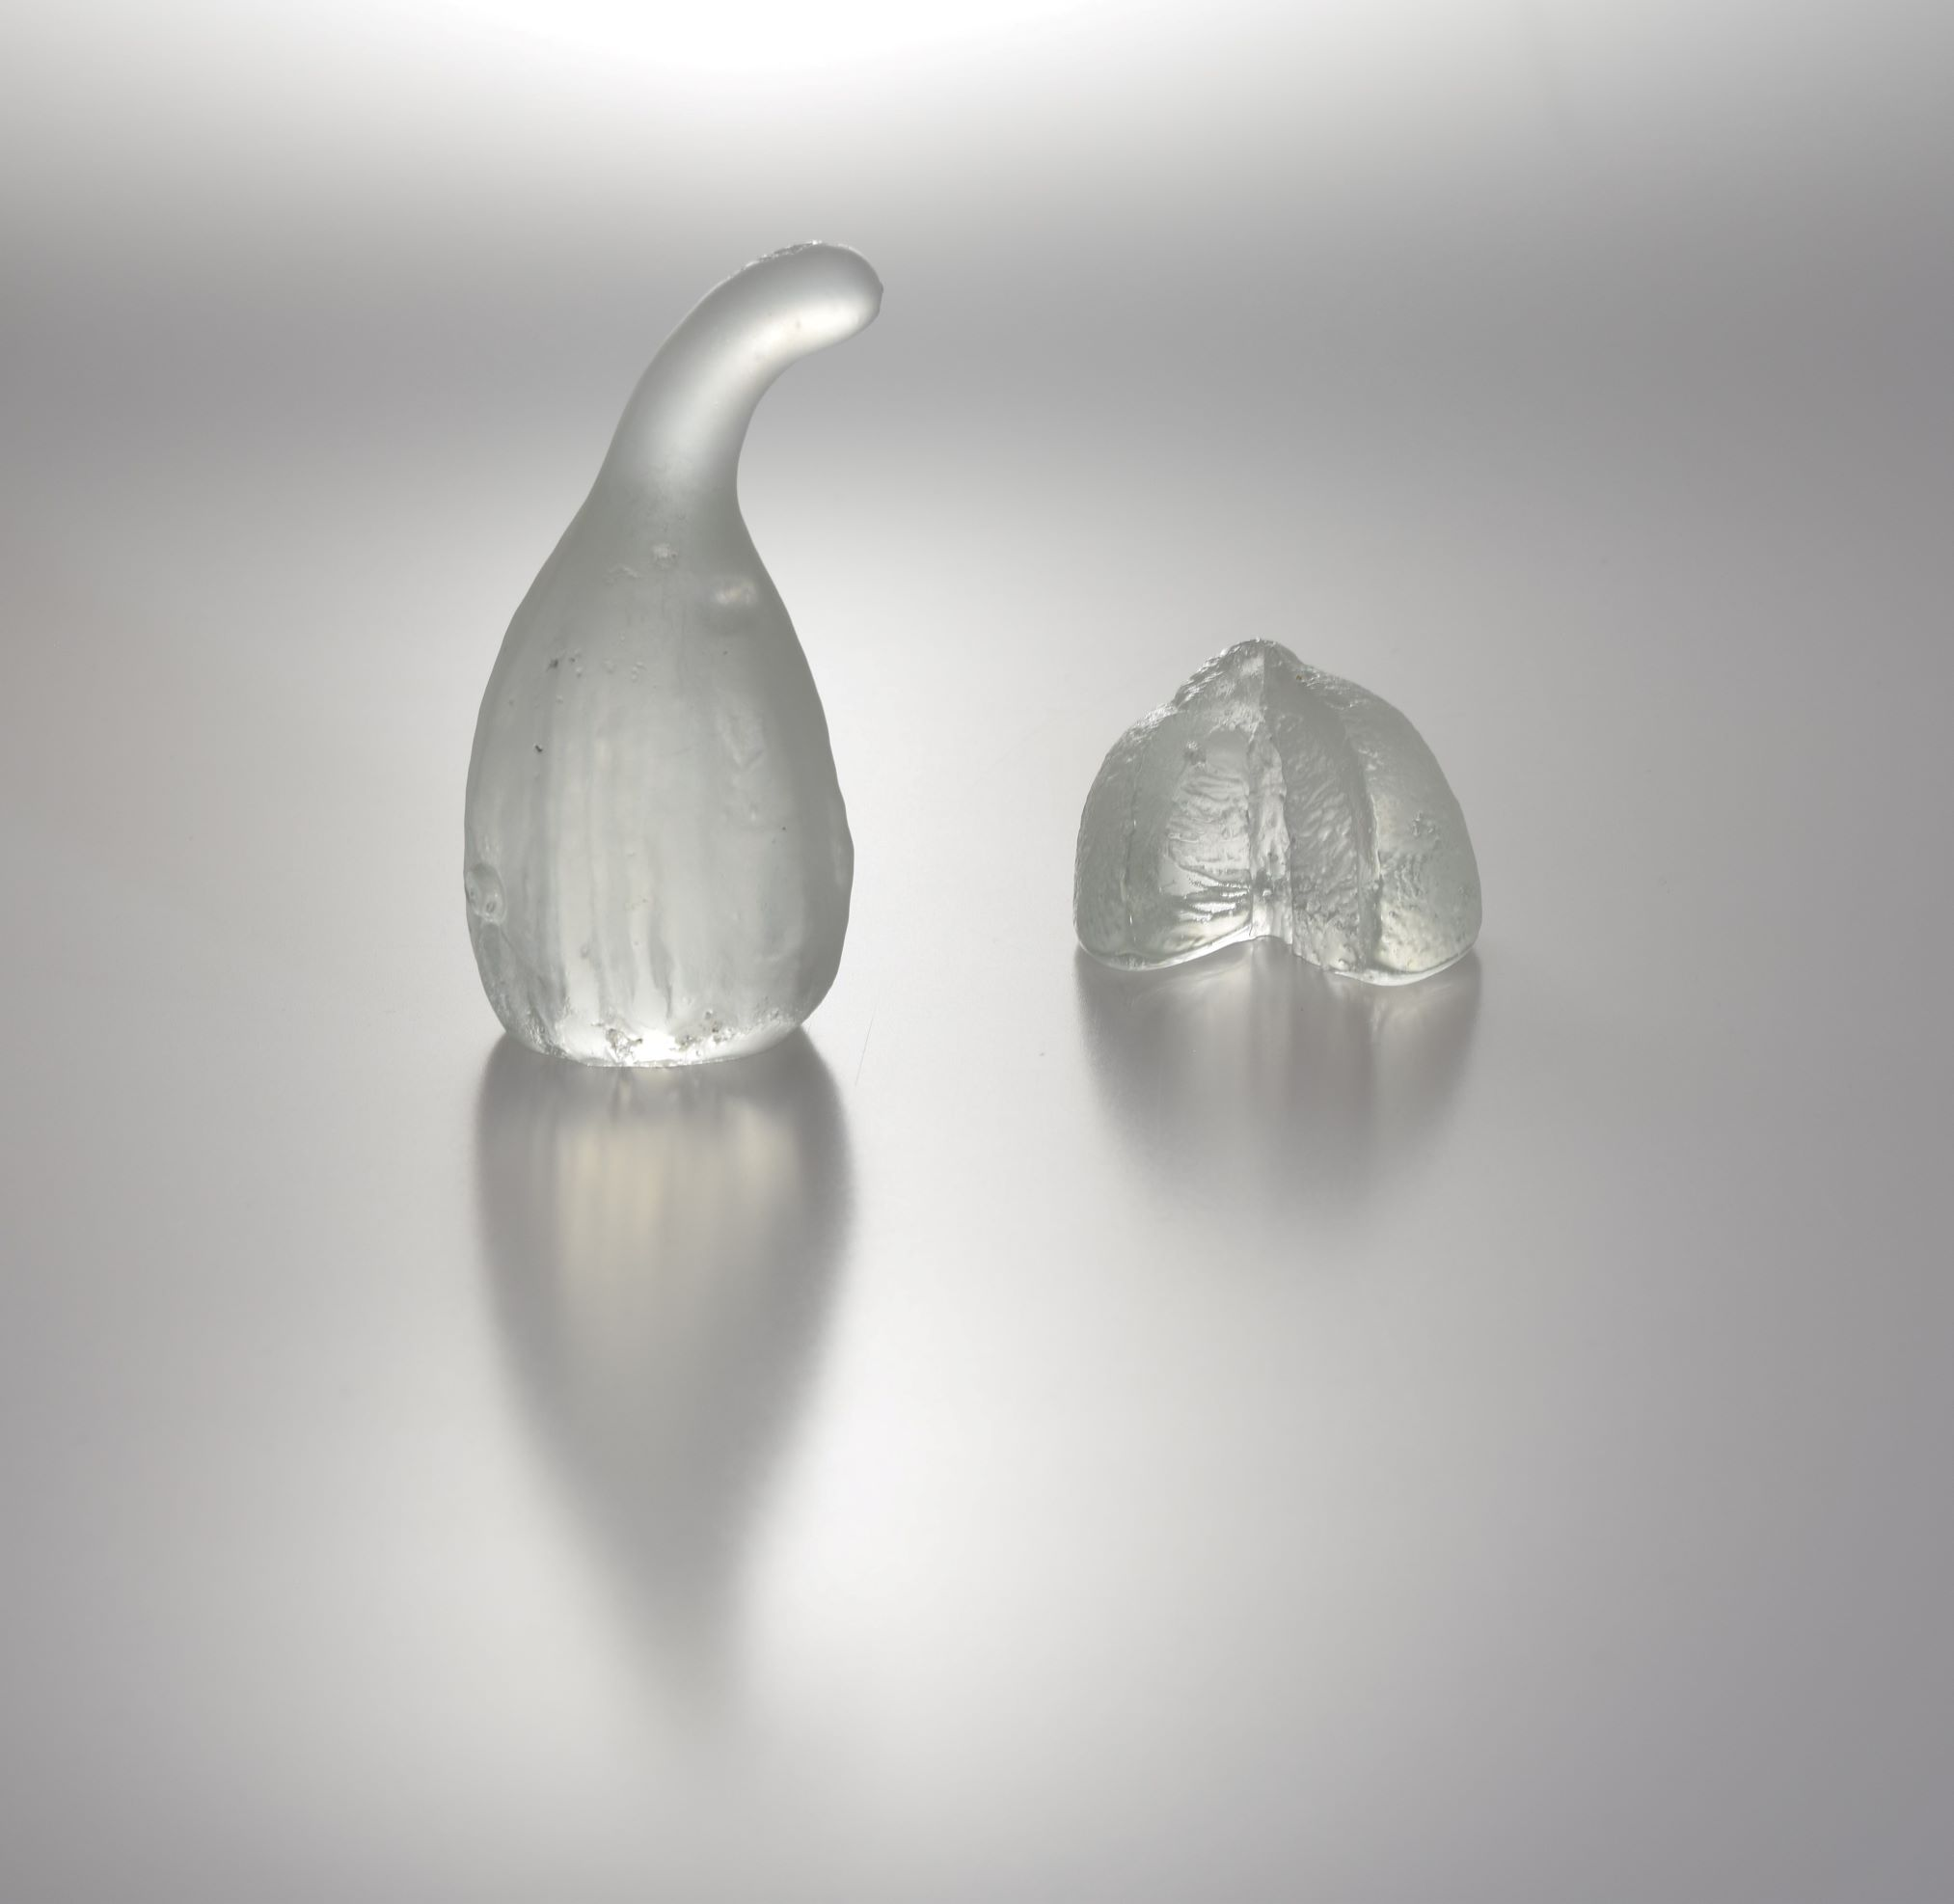 cast glass gourd (on the left) and cast glass lime (on the right), each available to buy separately